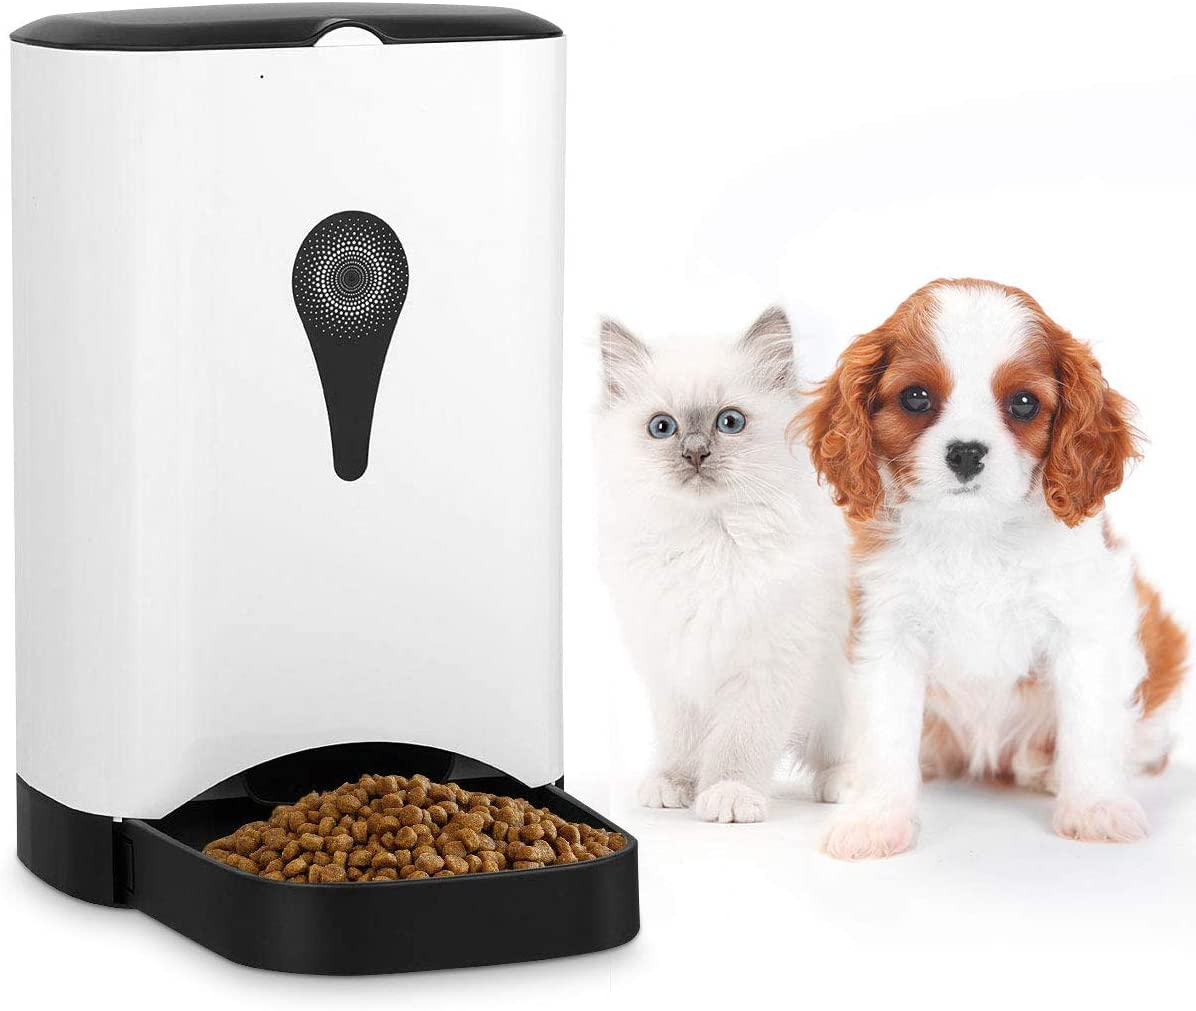 Giantex Automatic Cat Feeder 4.5L Pet Food Dispenser for Cats, Dogs Small Animals, Distribution Alarms, Portion Control, Voice Recording, Programmable Timer, Up to 4 Meals A Day